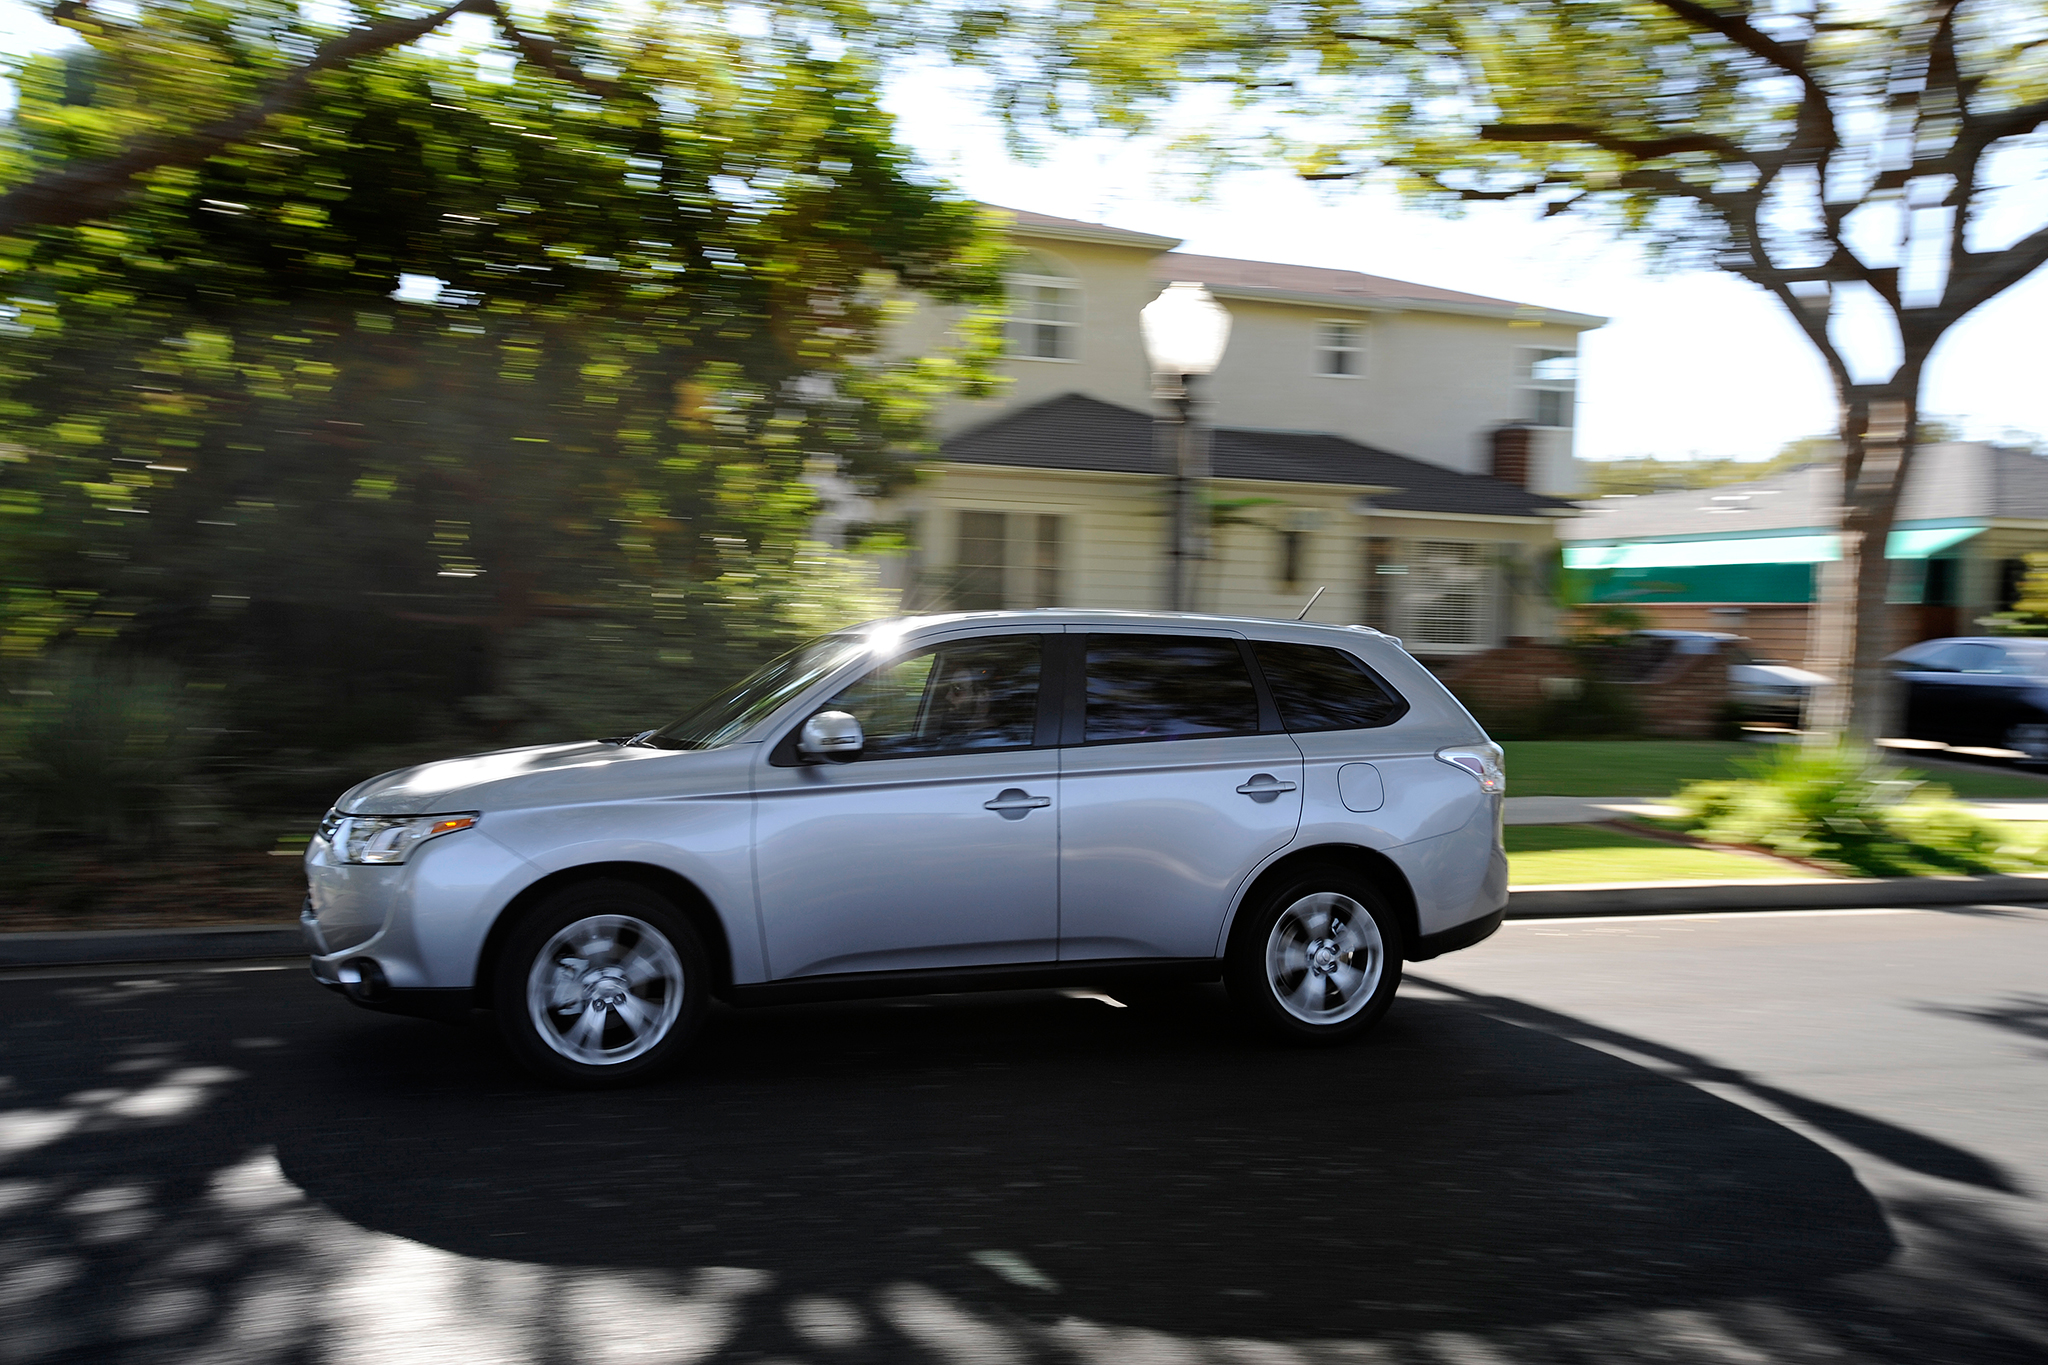 2014 Mitsubishi Outlander SE S-AWC Long-Term Verdict - Motor Trend